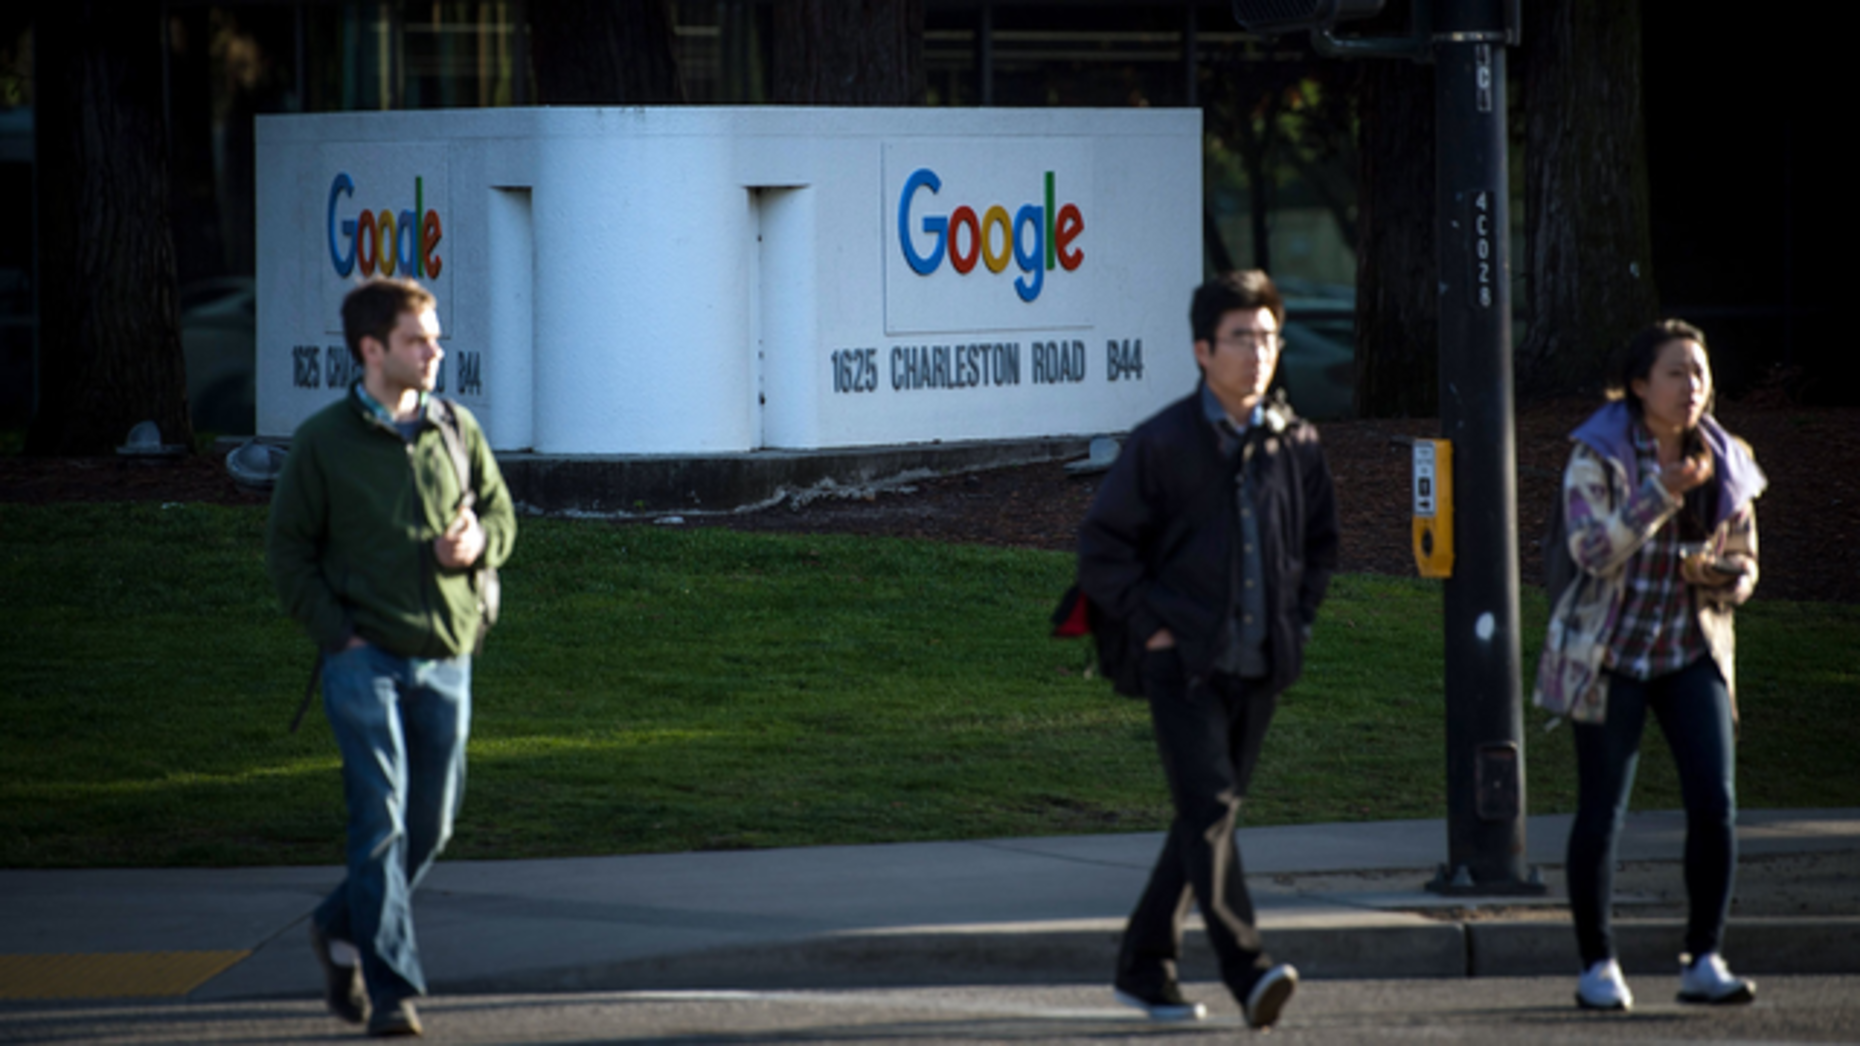 Google's campus in Mountain View, Calif. Photo by Bloomberg.